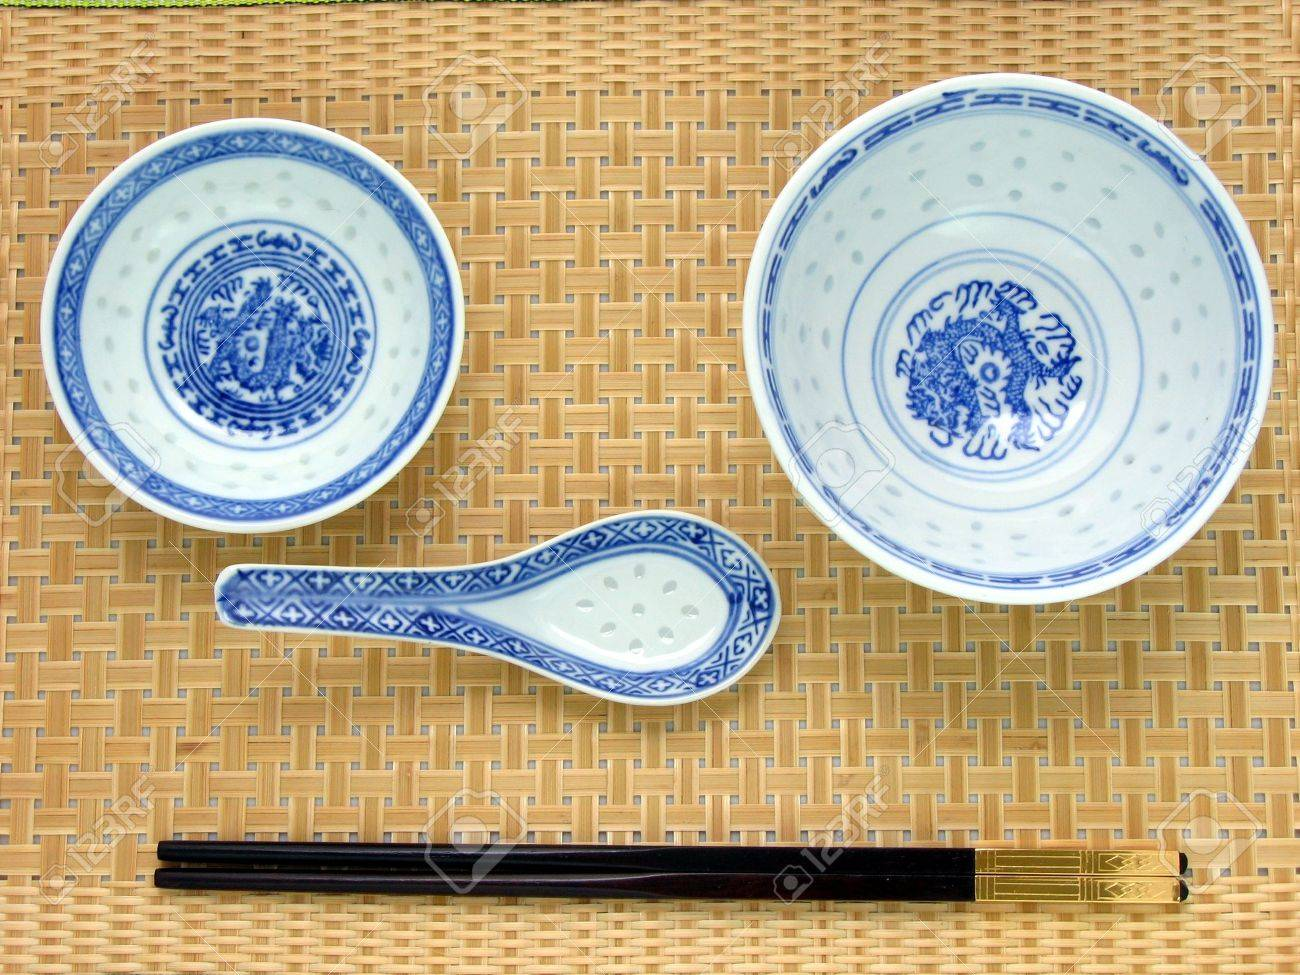 Chinese table setting - Traditional Chinese Table Setting Chinese Bowl Spoon Plate Cropsticks On Bamboo Mat